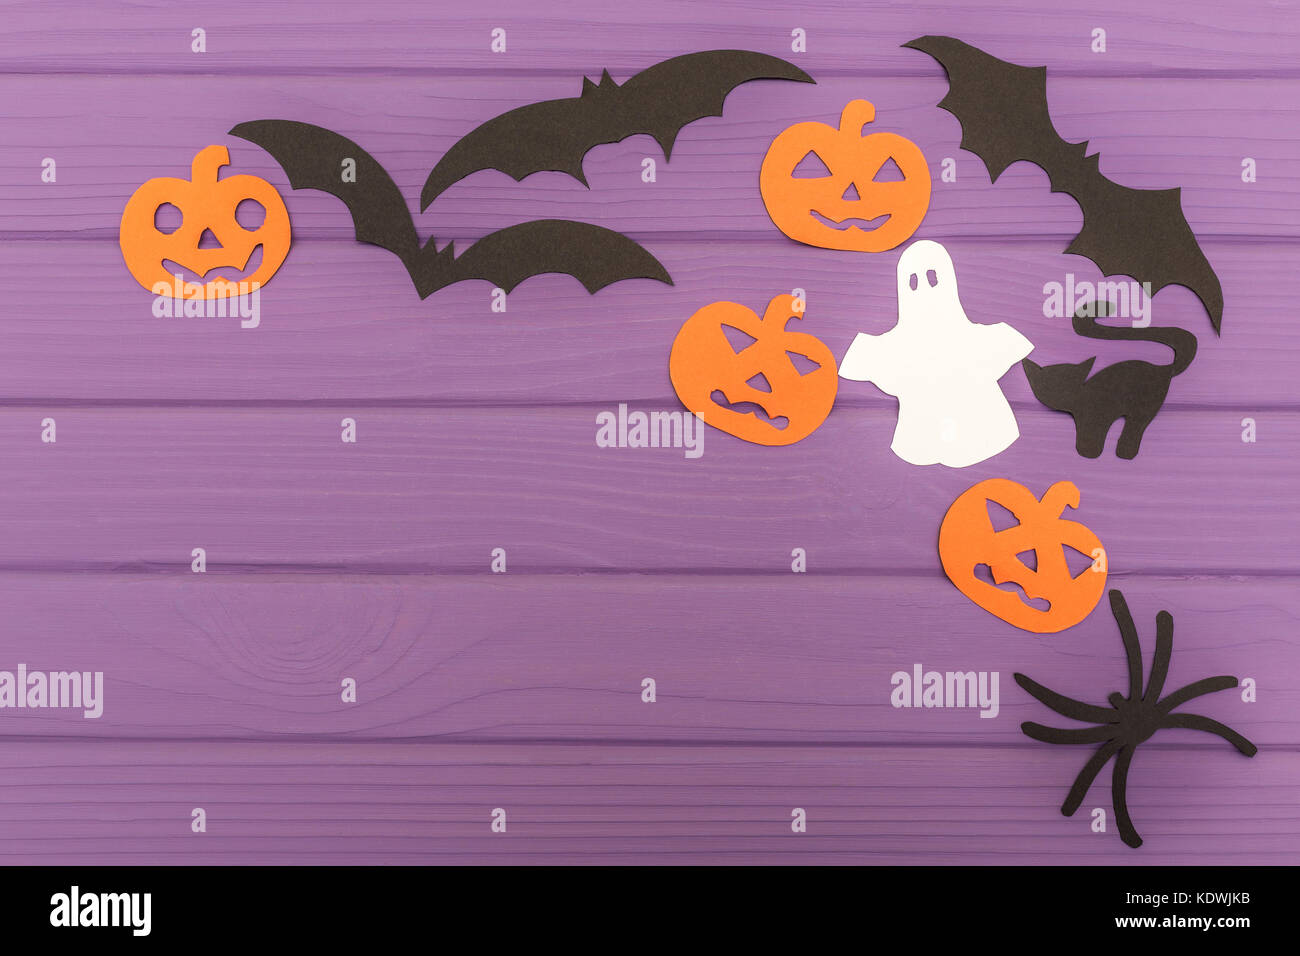 Halloween silhouettes cut out of paper made of corner frame with pumpkins, bats, cat, spider, and ghost on purple - Stock Image